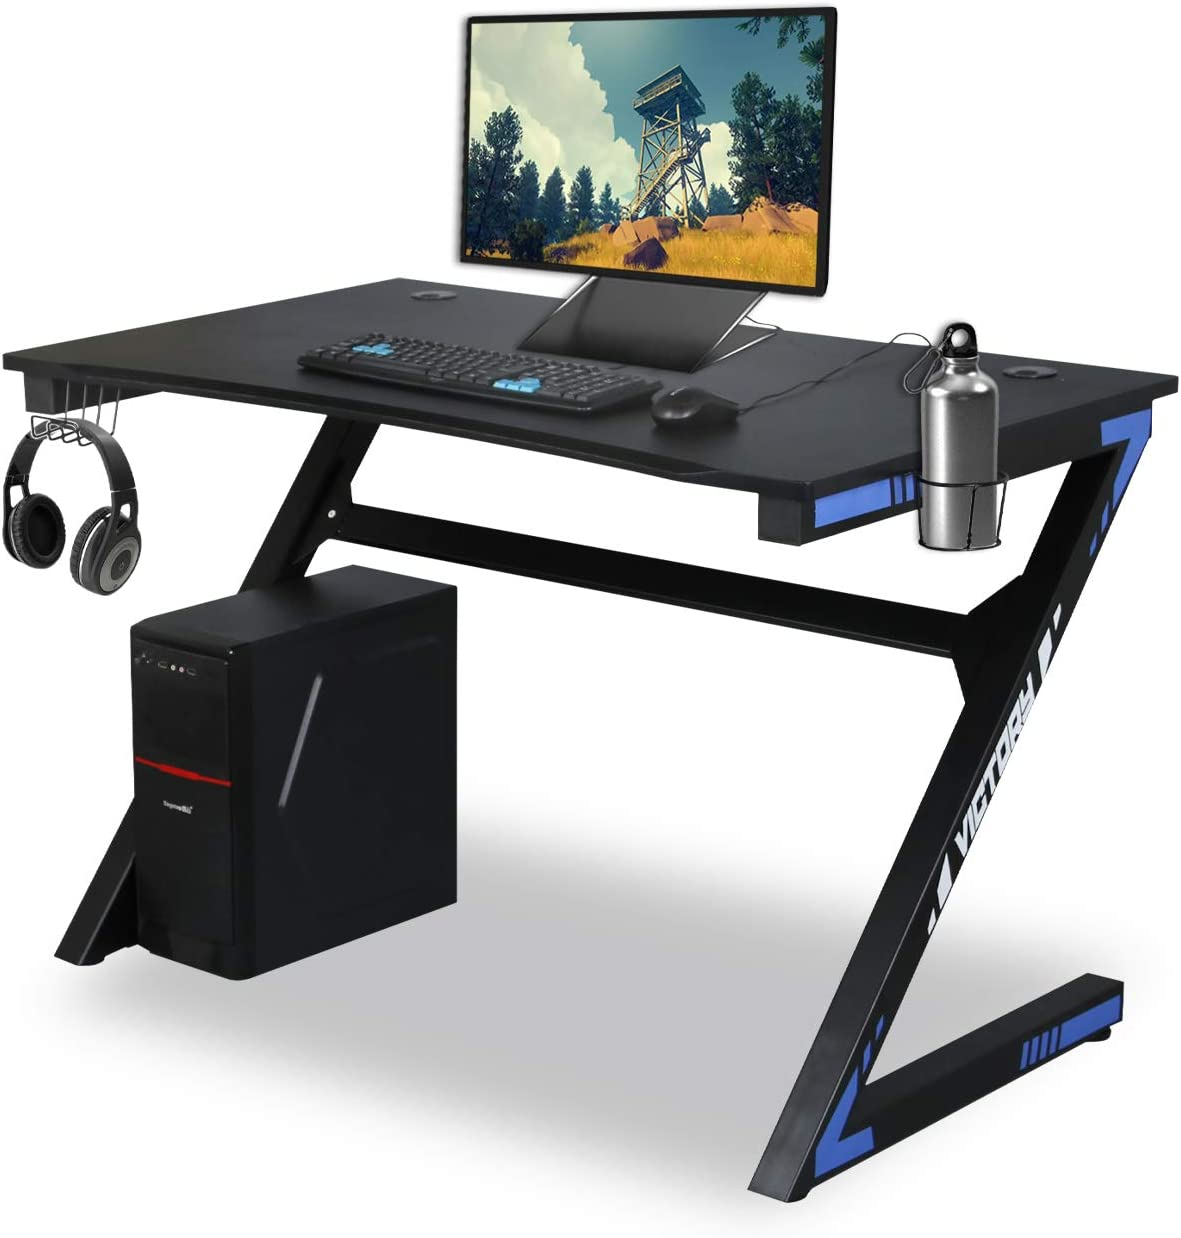 Amazon Com Kazila Gaming Desk Computer Table For Home Office Sturdy Desk With Cup Holder Headphone Hook Gamer Workstation Laptop Pc Desk Blue Kitchen Dining